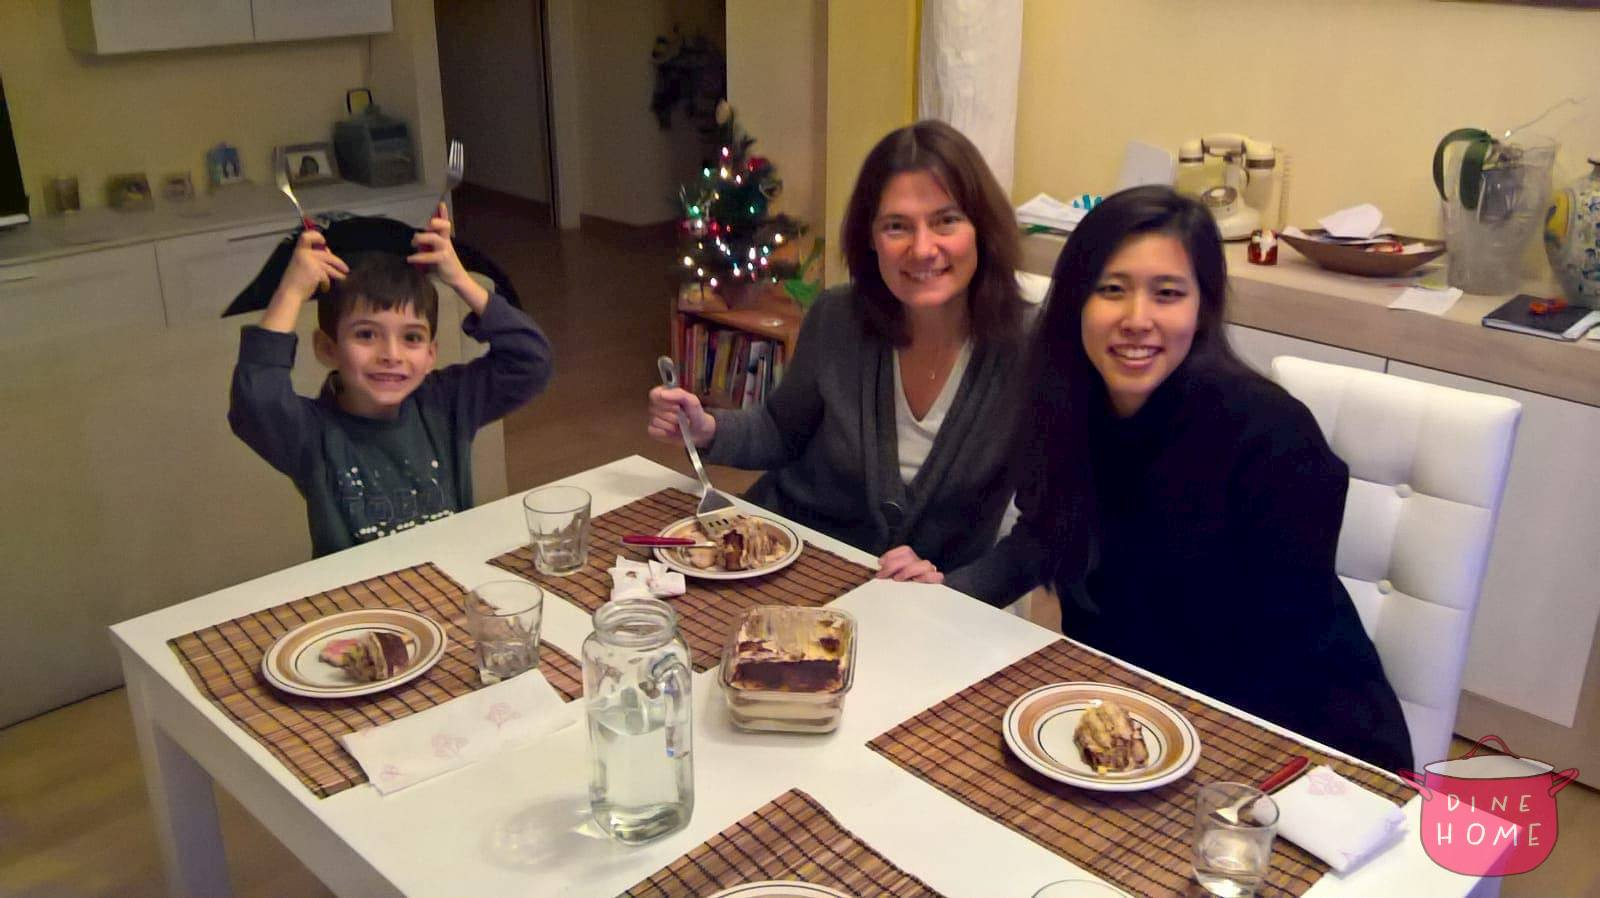 Hyo, a student from South Korea, having dinner with her Dinehome family.